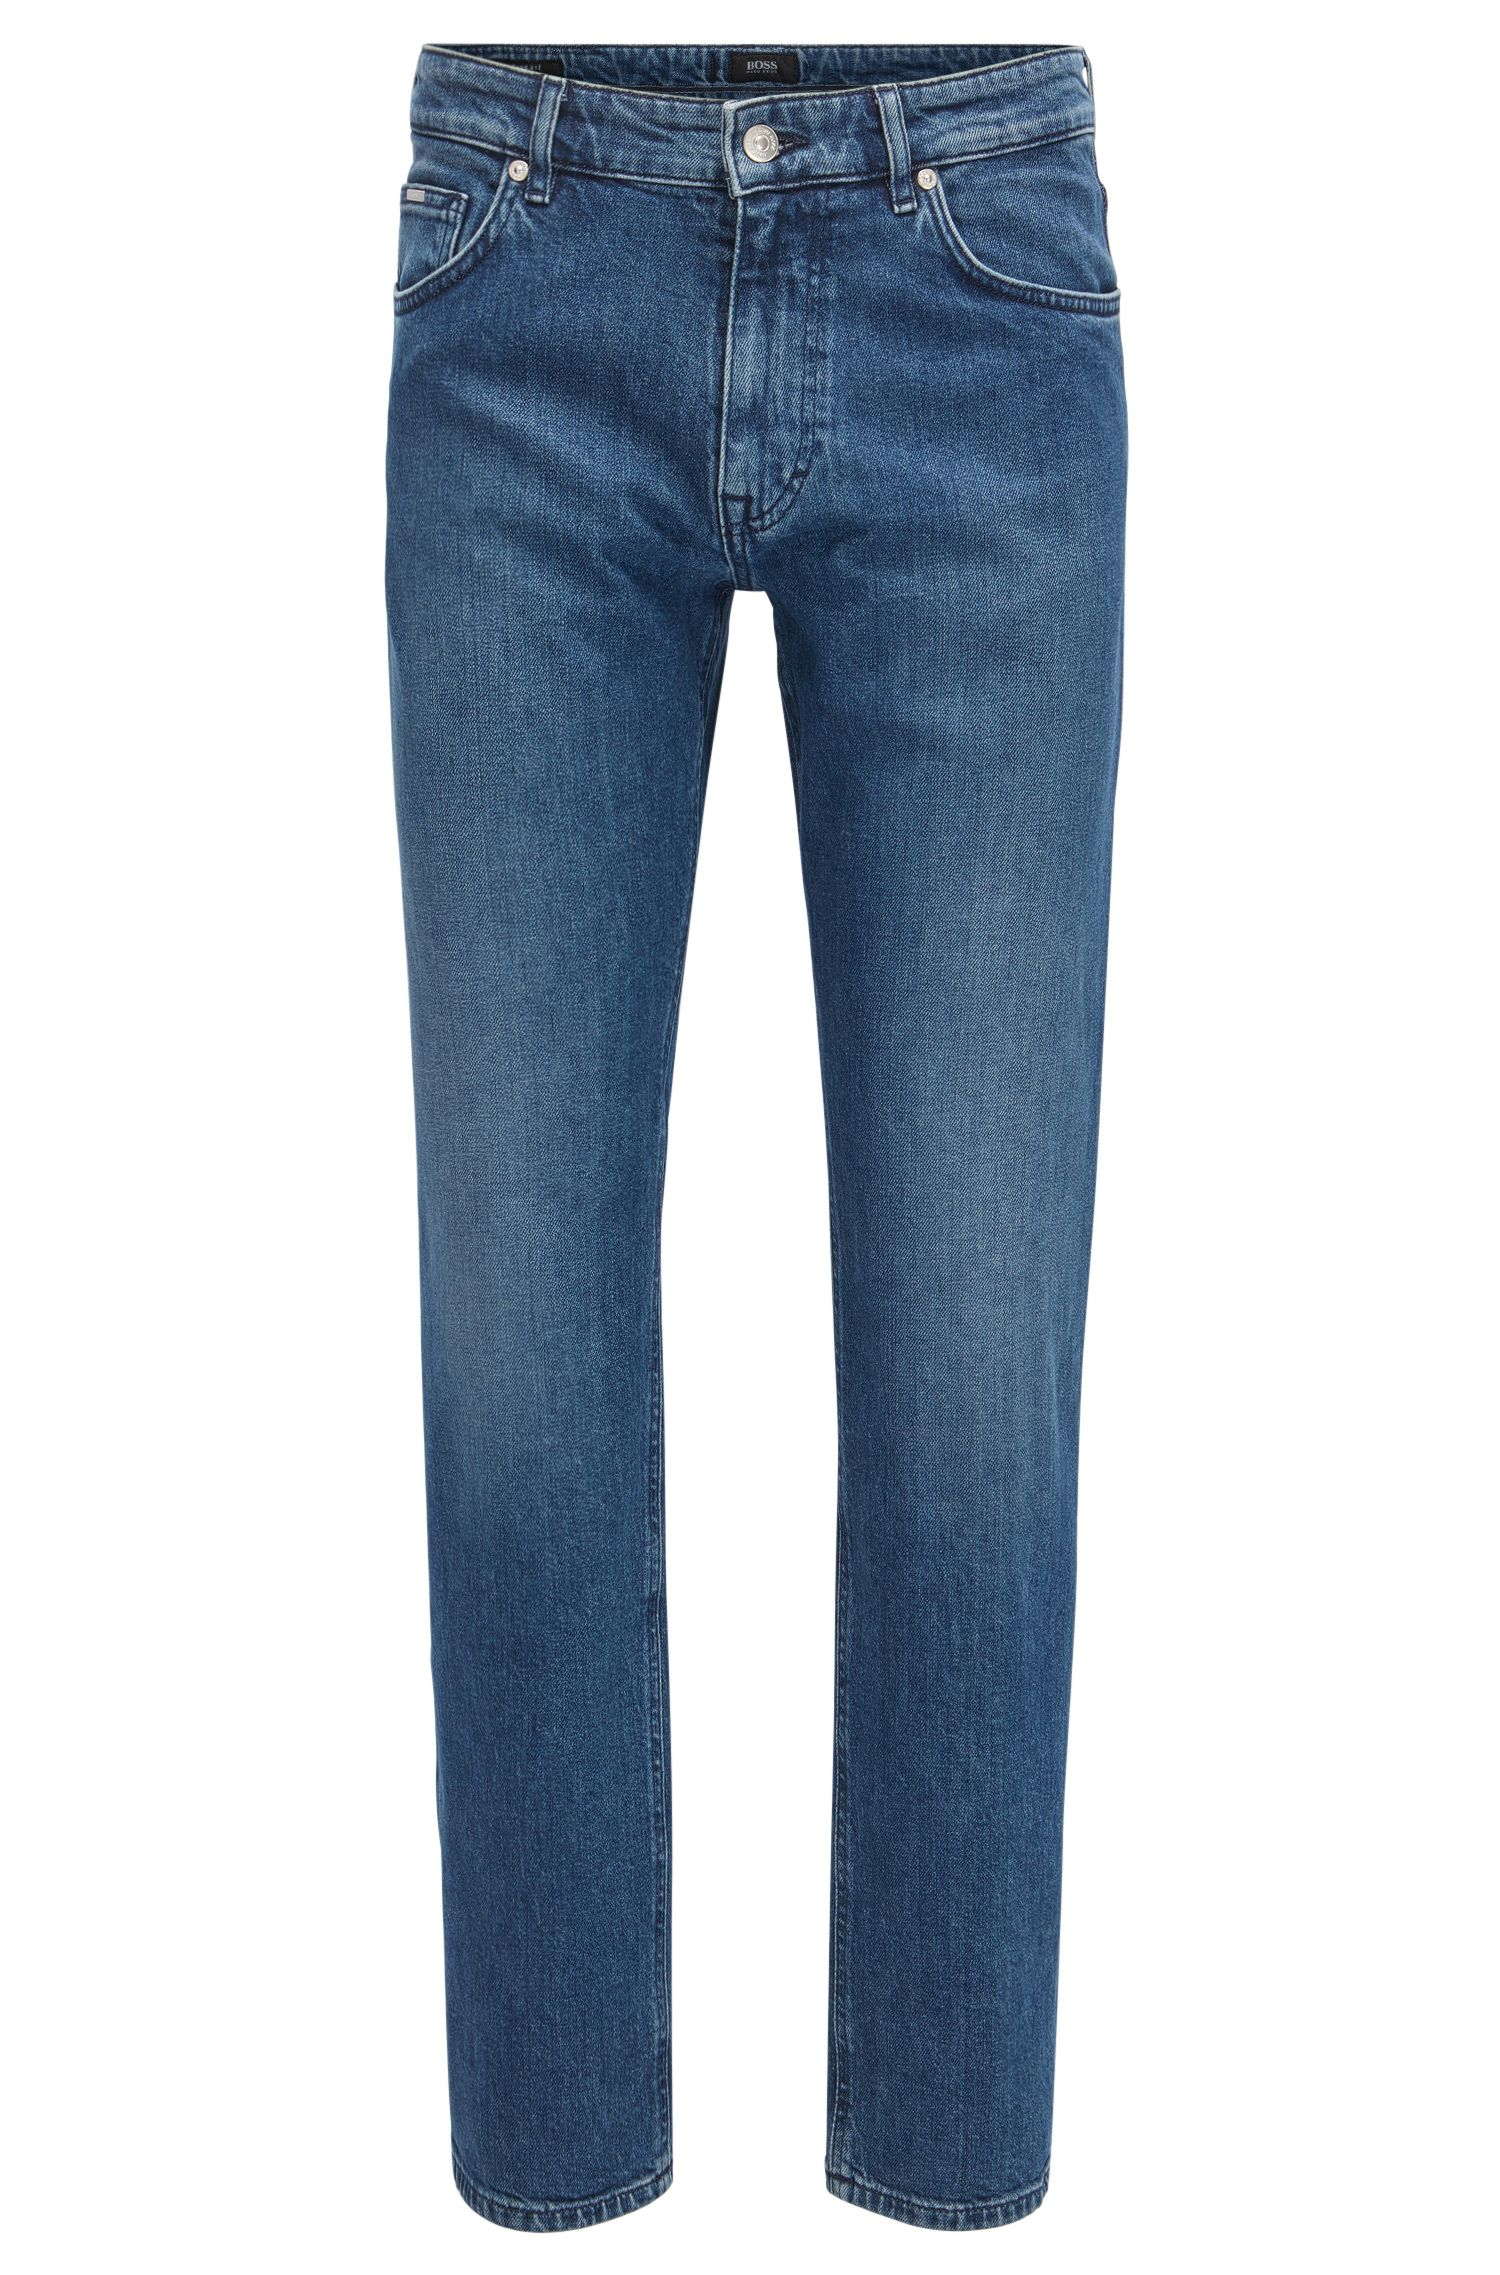 HUGO BOSS Jean Relaxed Fit en denim italien foncé